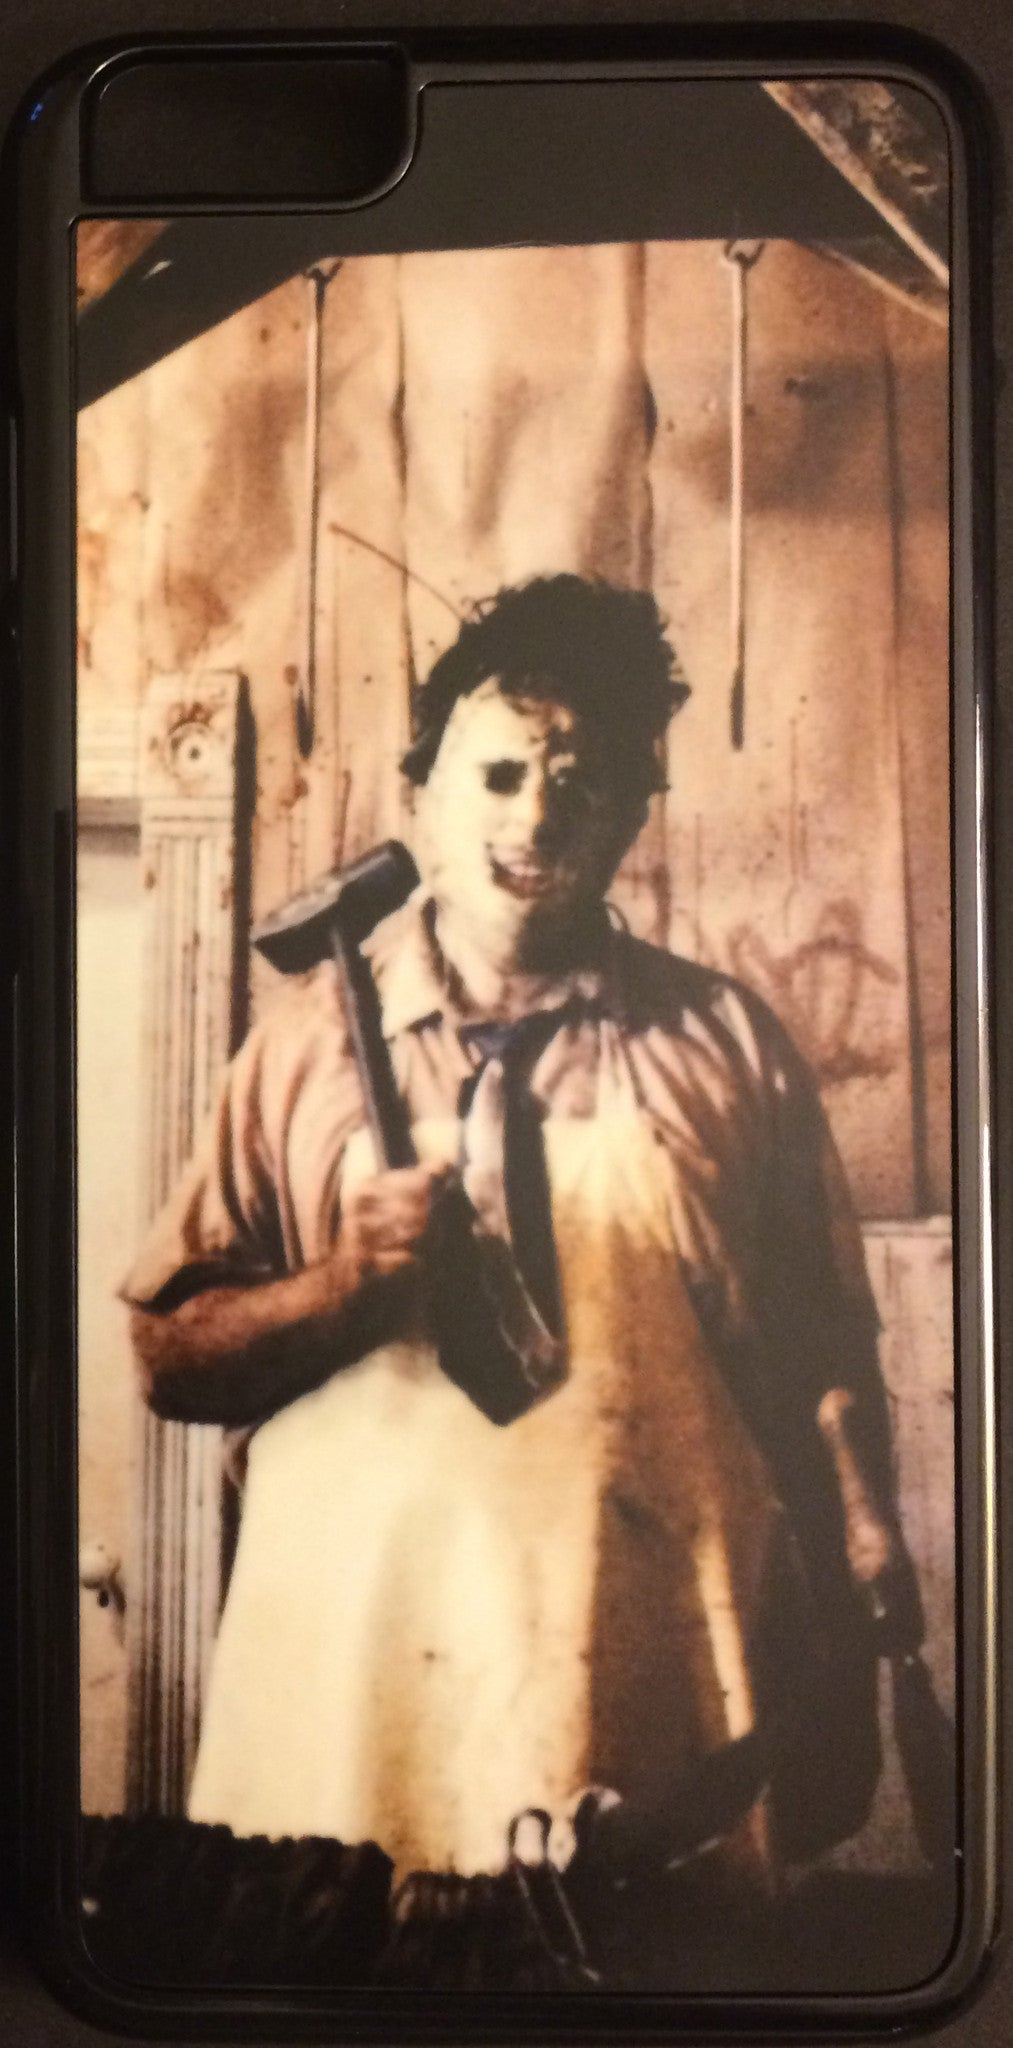 Texas Chainsaw Massacre Leatherface iPhone 6+/6S+ Case